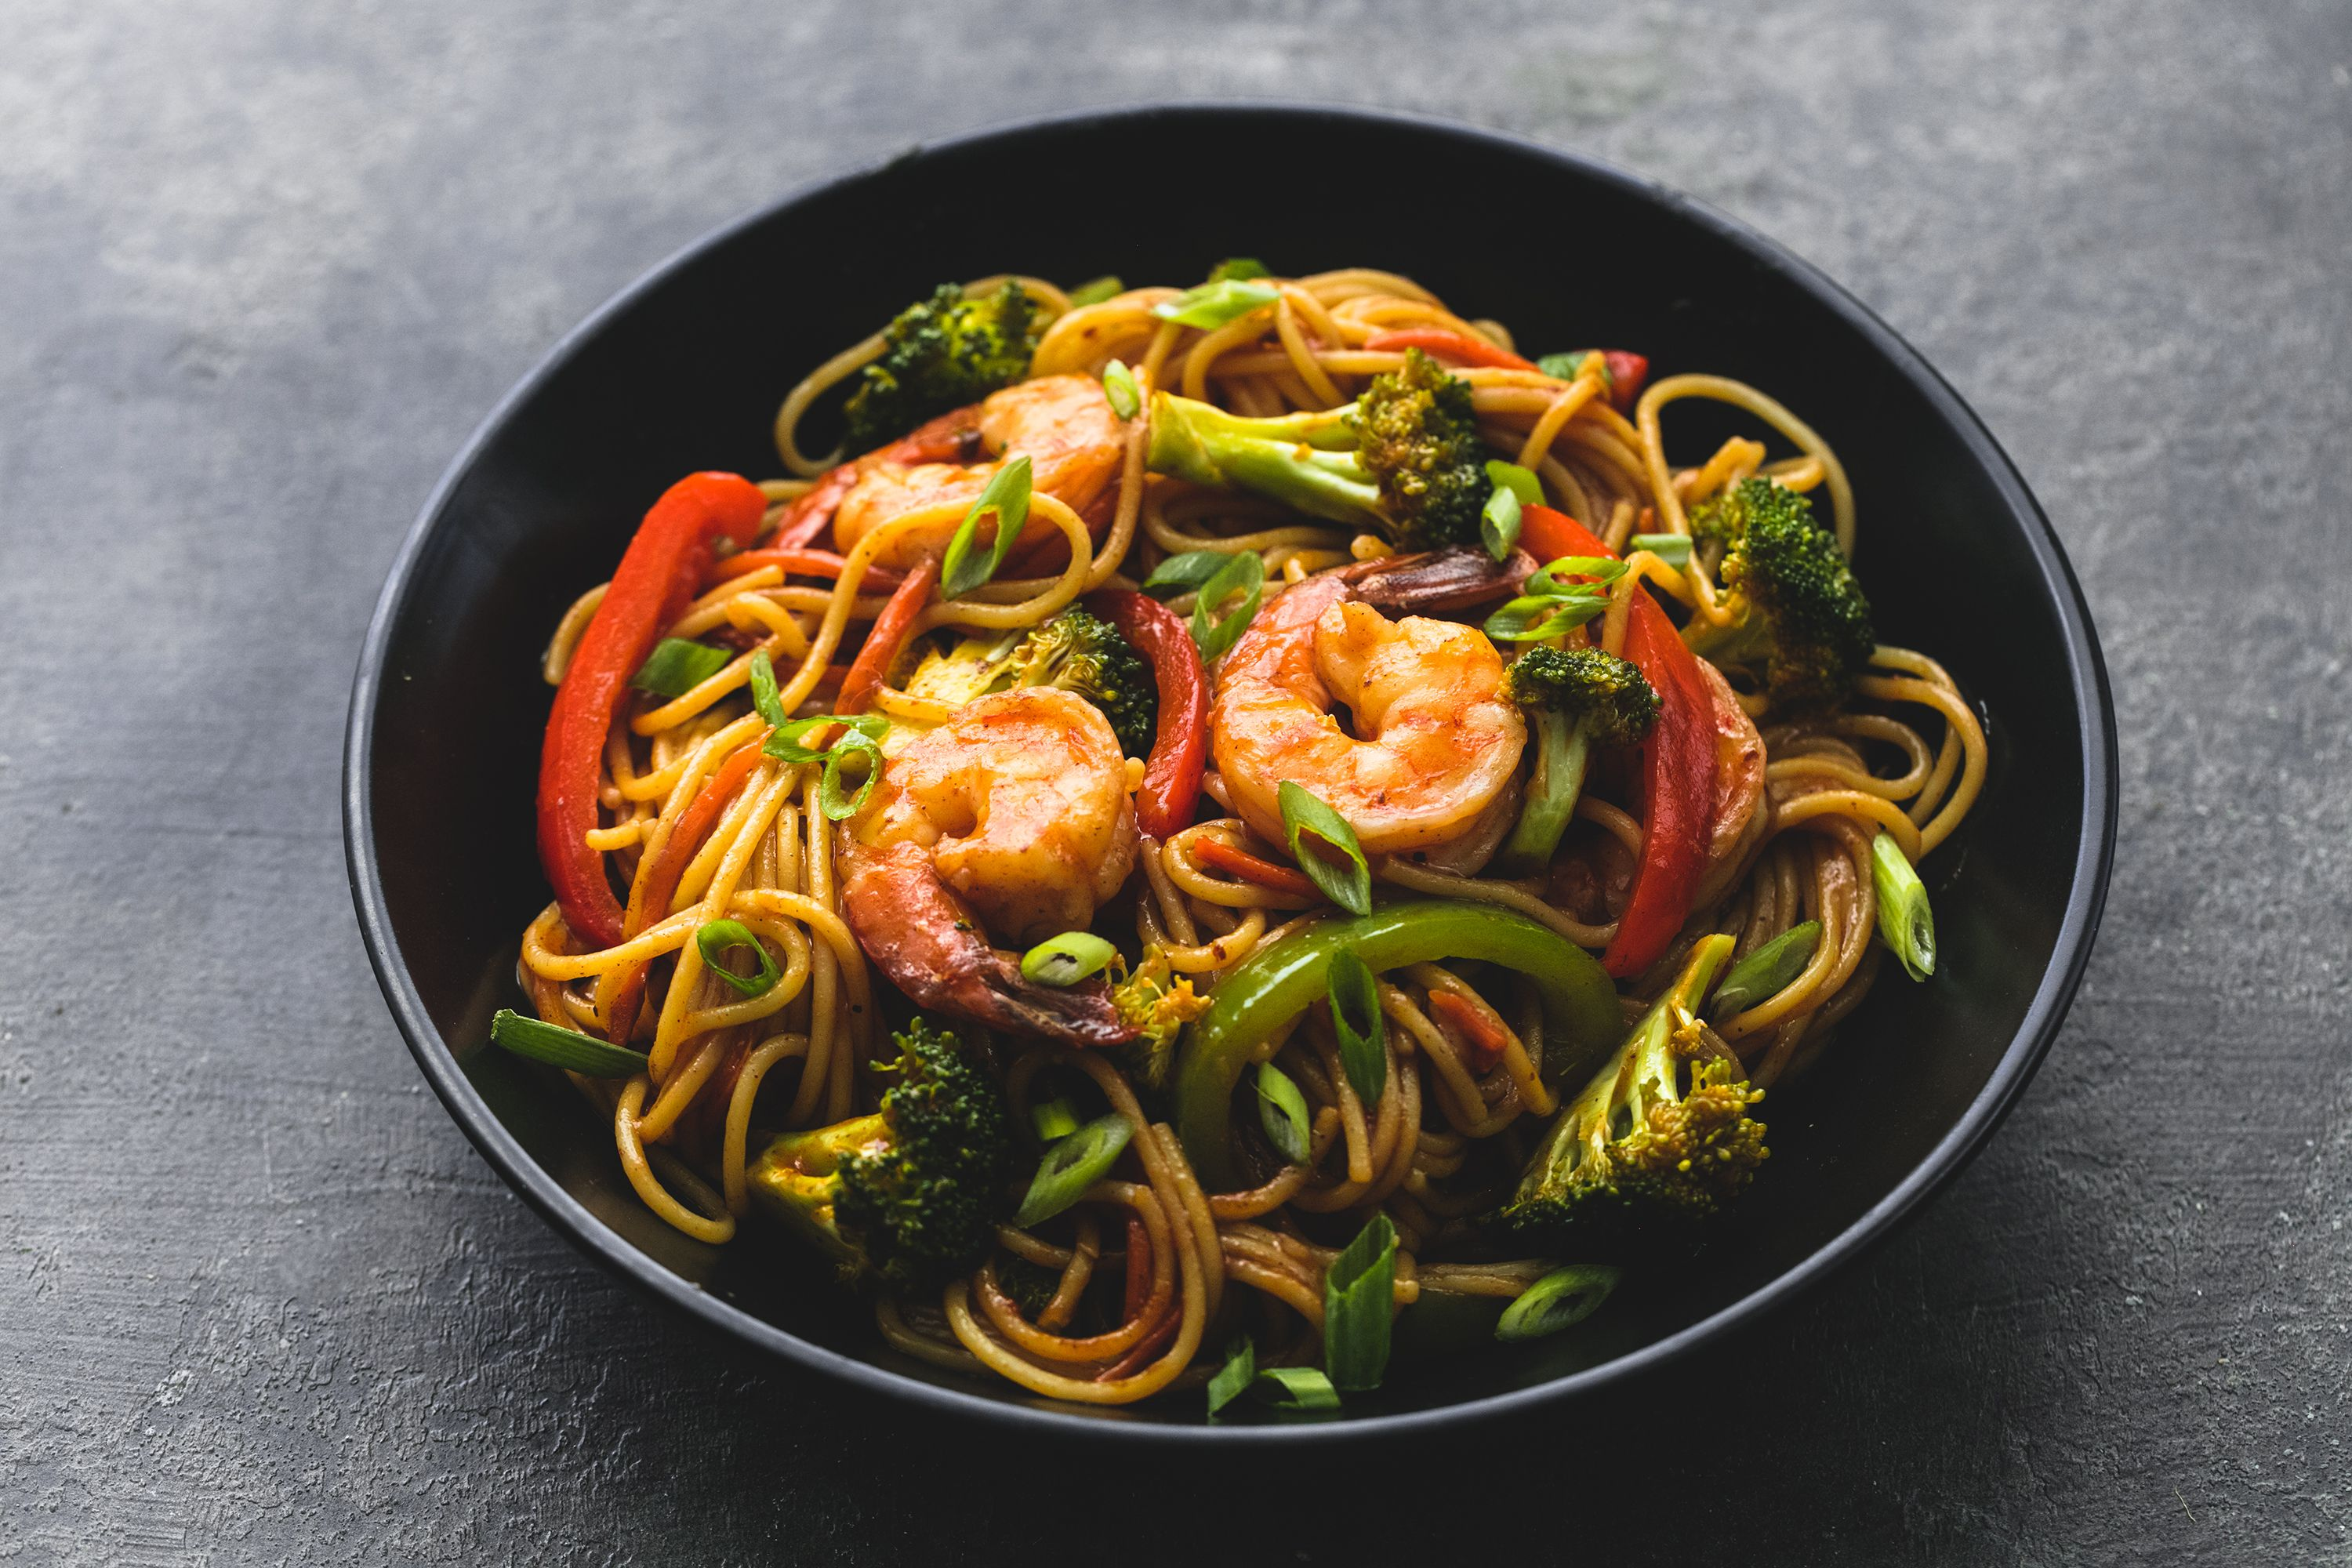 Best shrimp n broccoli lo mein recipe how to make shrimp n best shrimp n broccoli lo mein recipe how to make shrimp n broccoli lo meindelish forumfinder Images